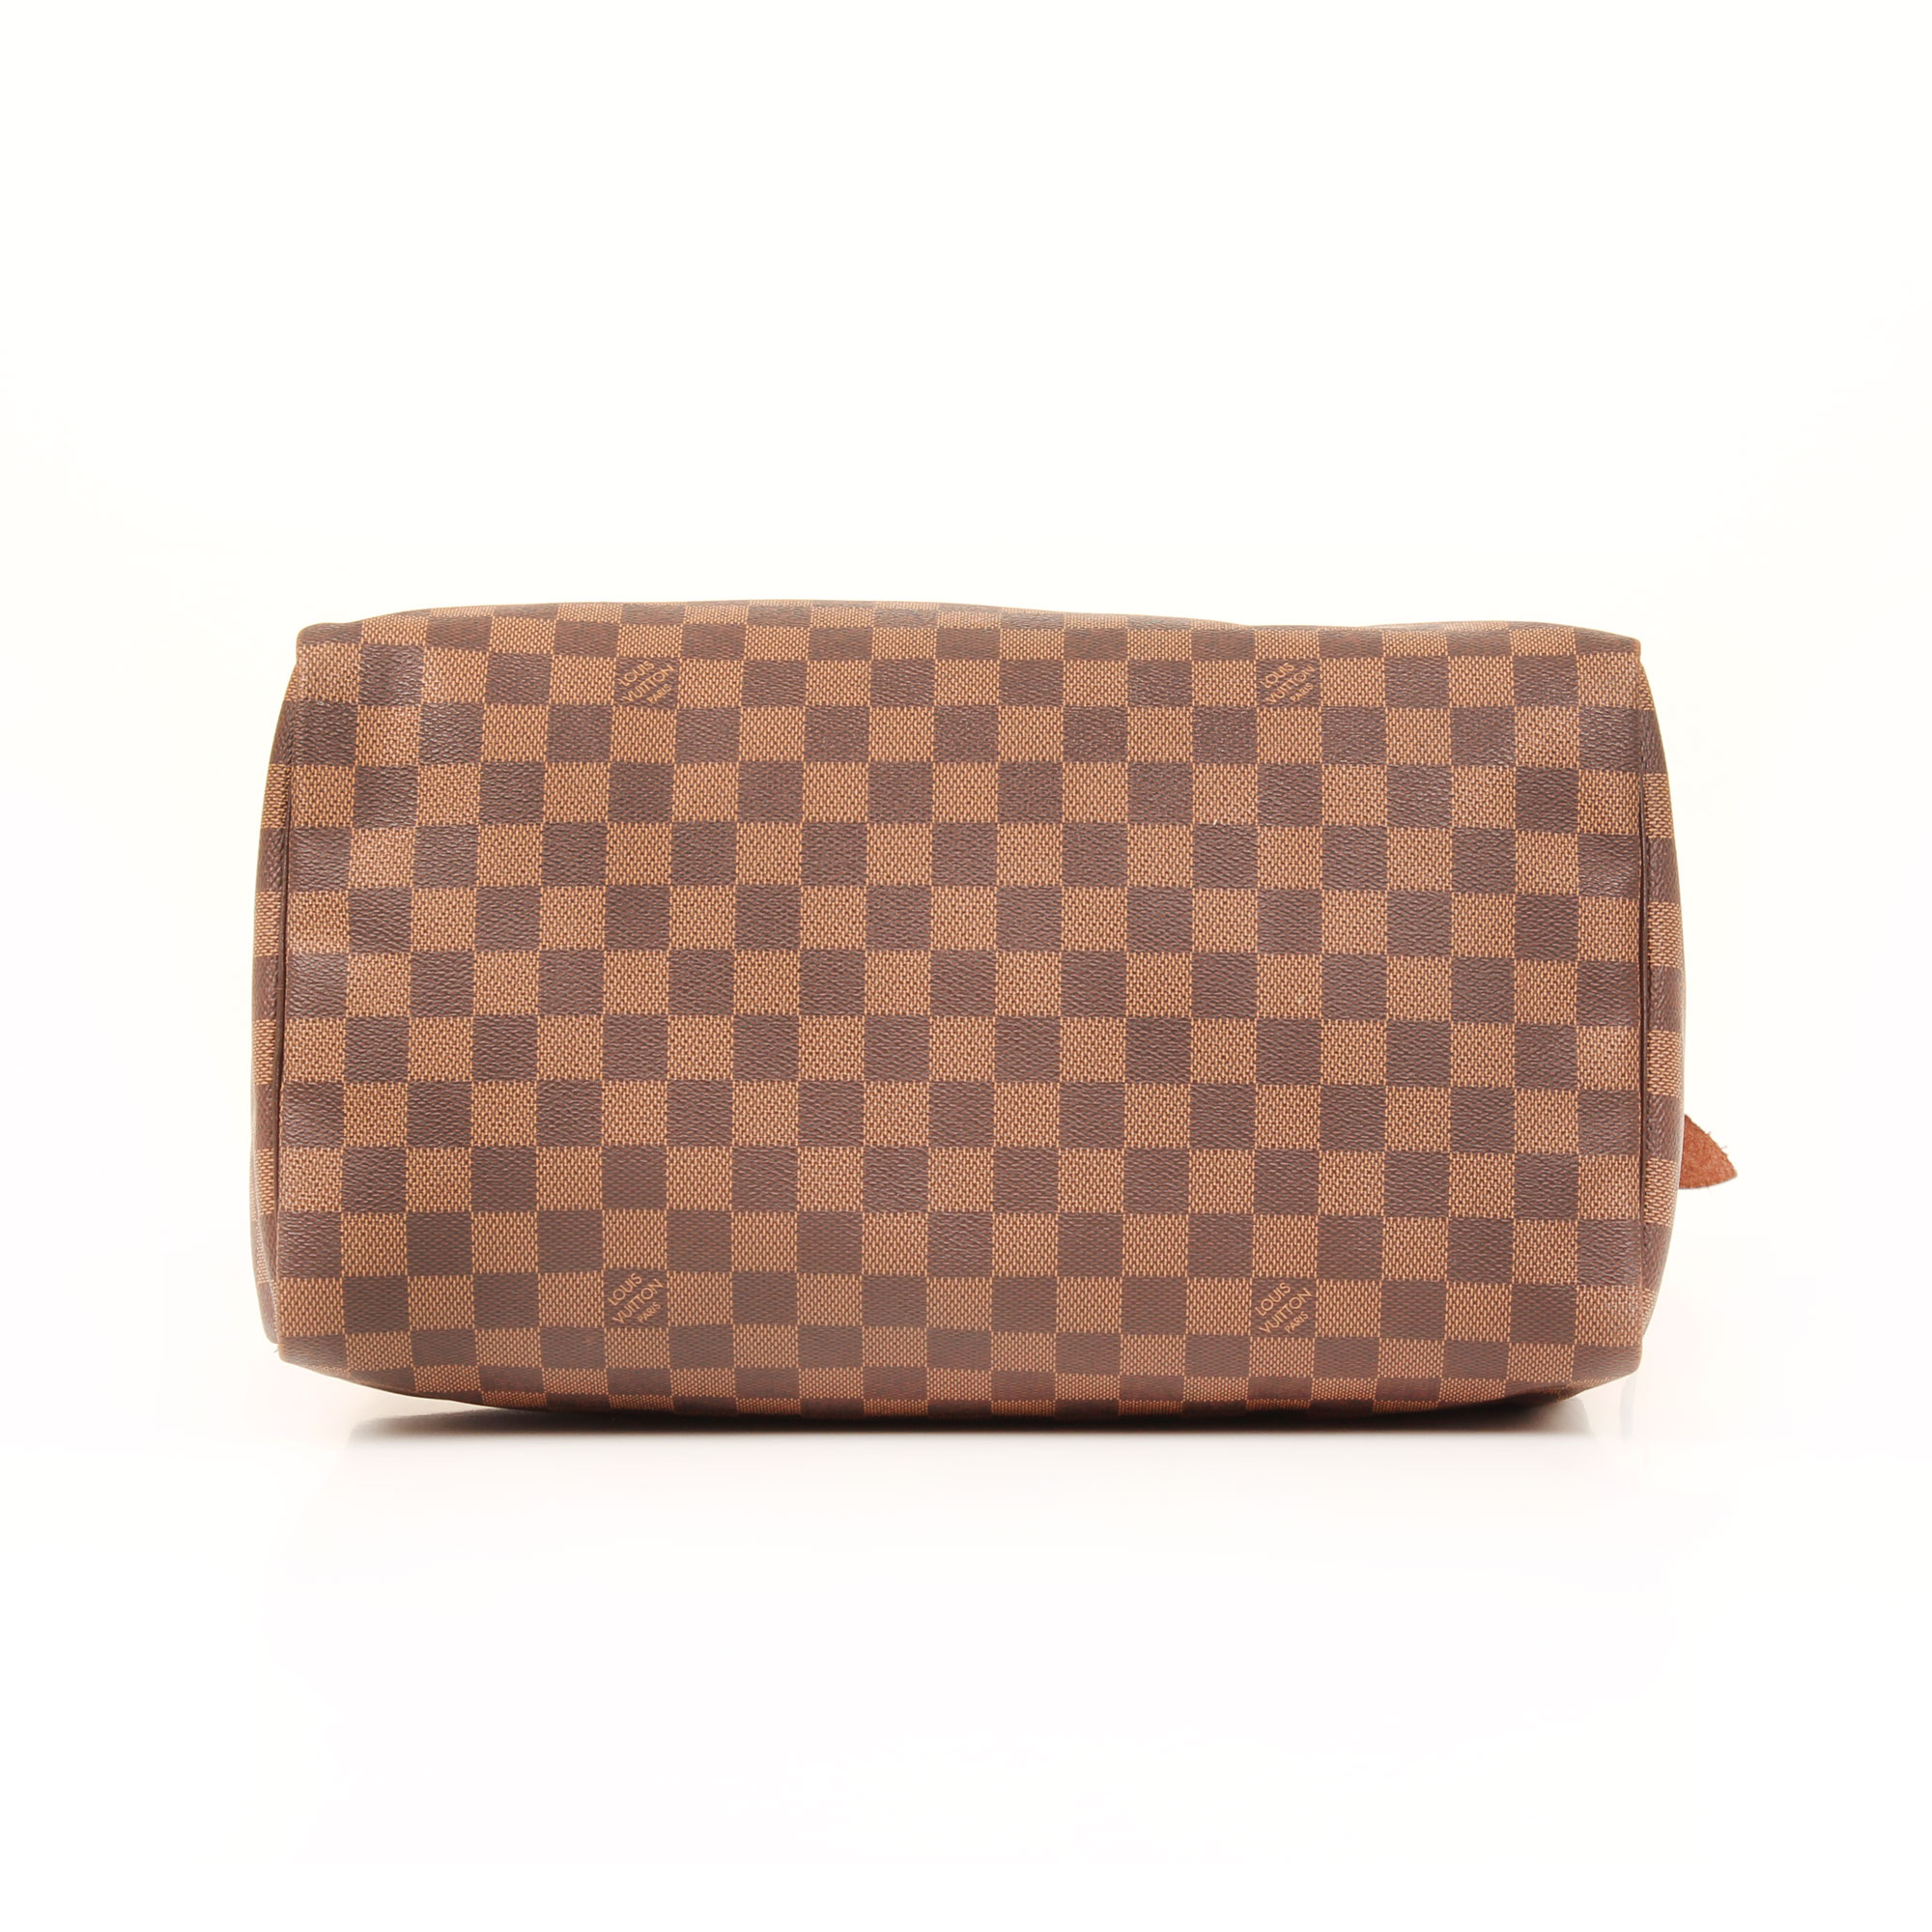 louis-vuitton-speedy-35-damier-ebene-bottom